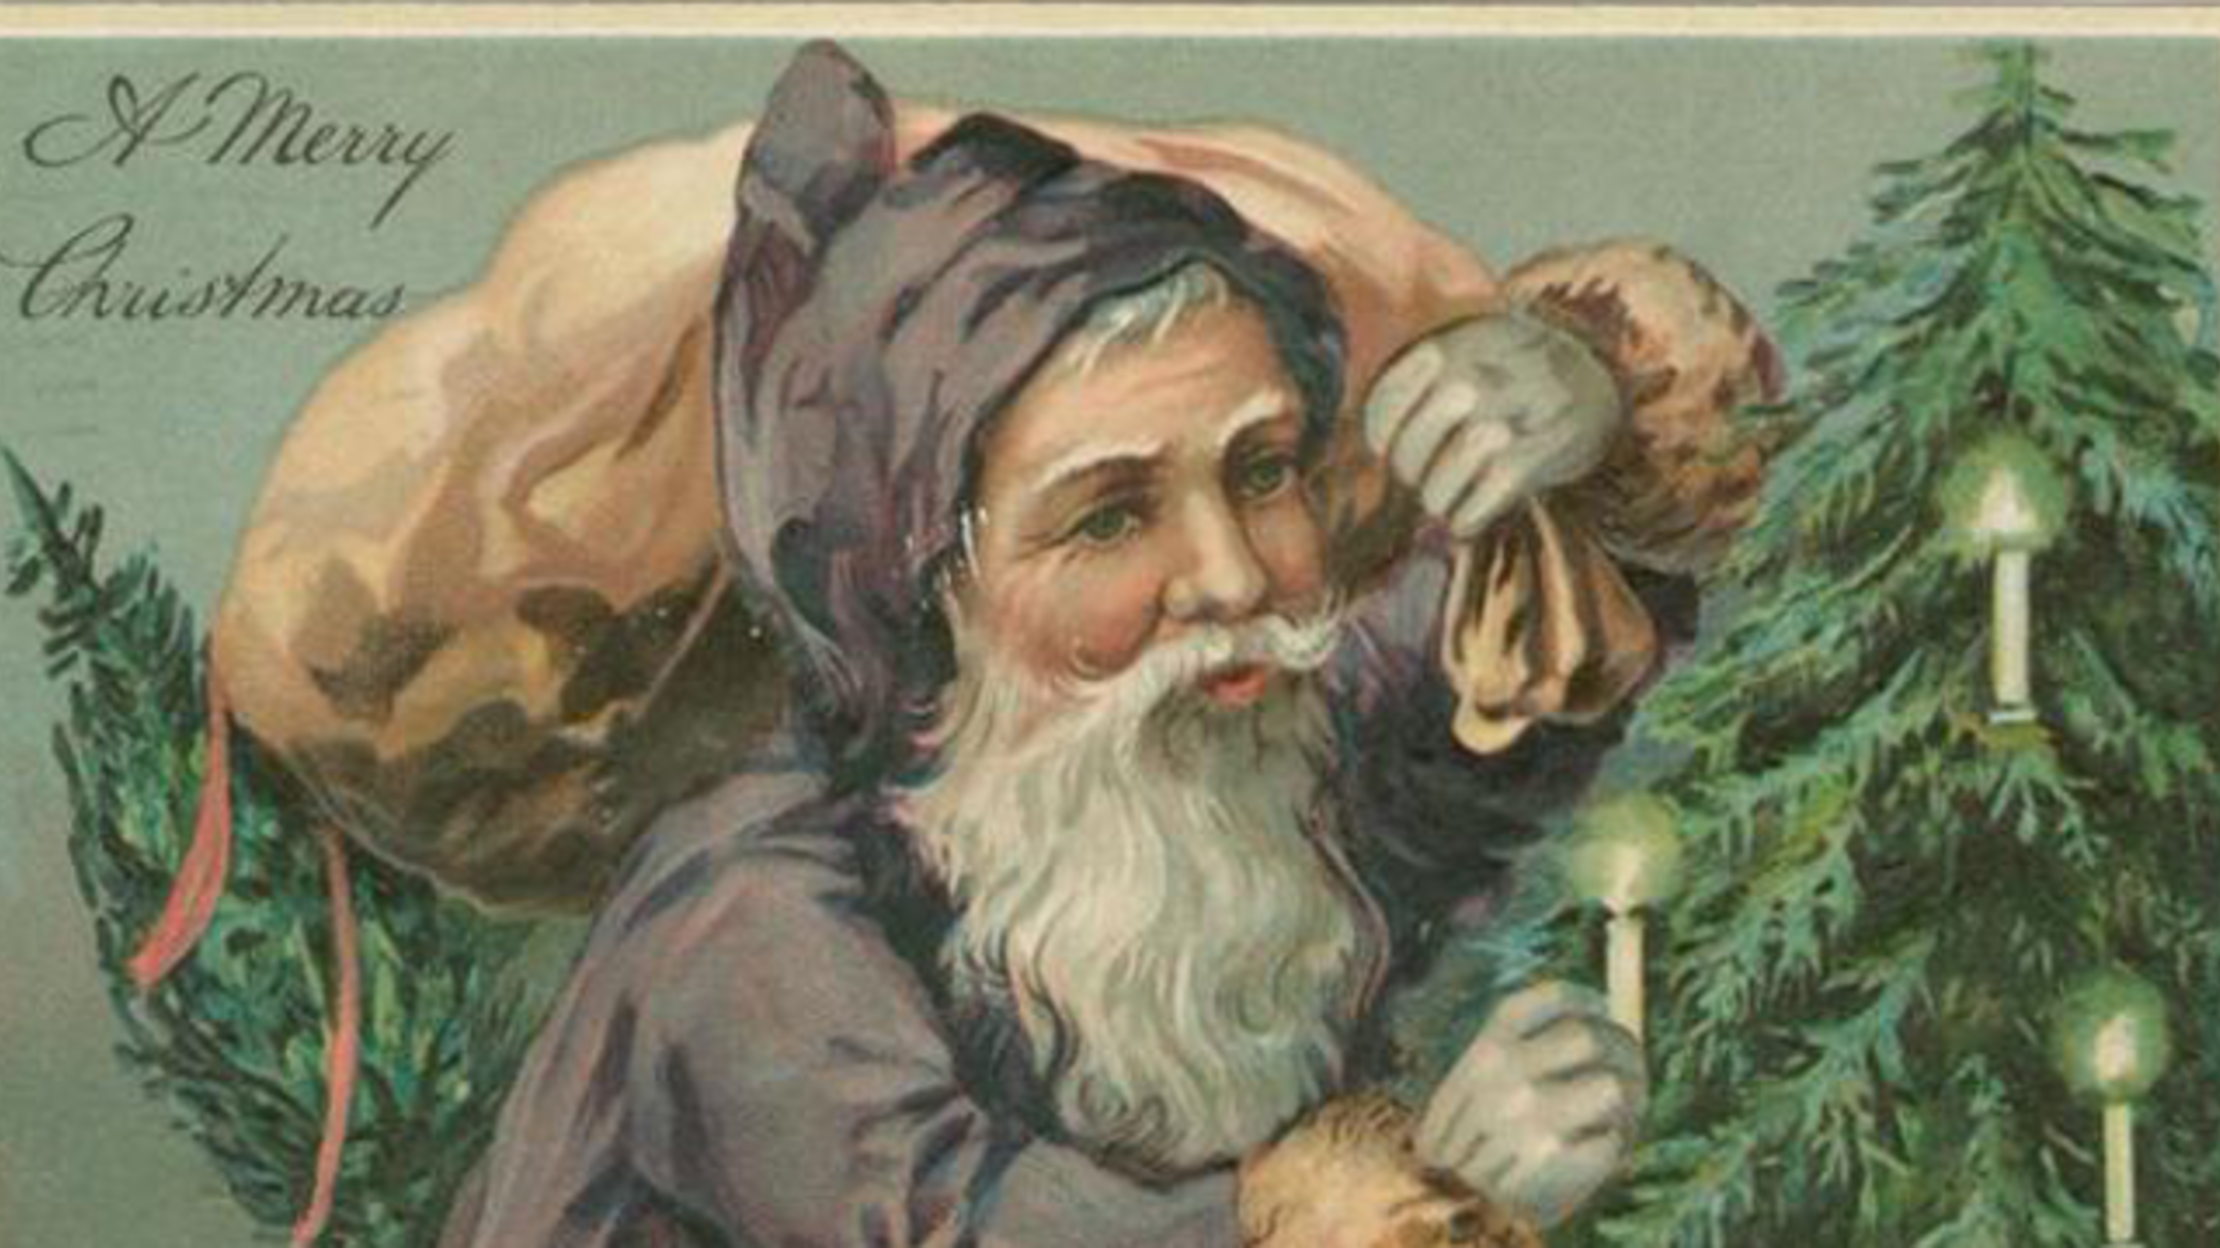 50 Vintage Christmas Cards From the New York Public Library